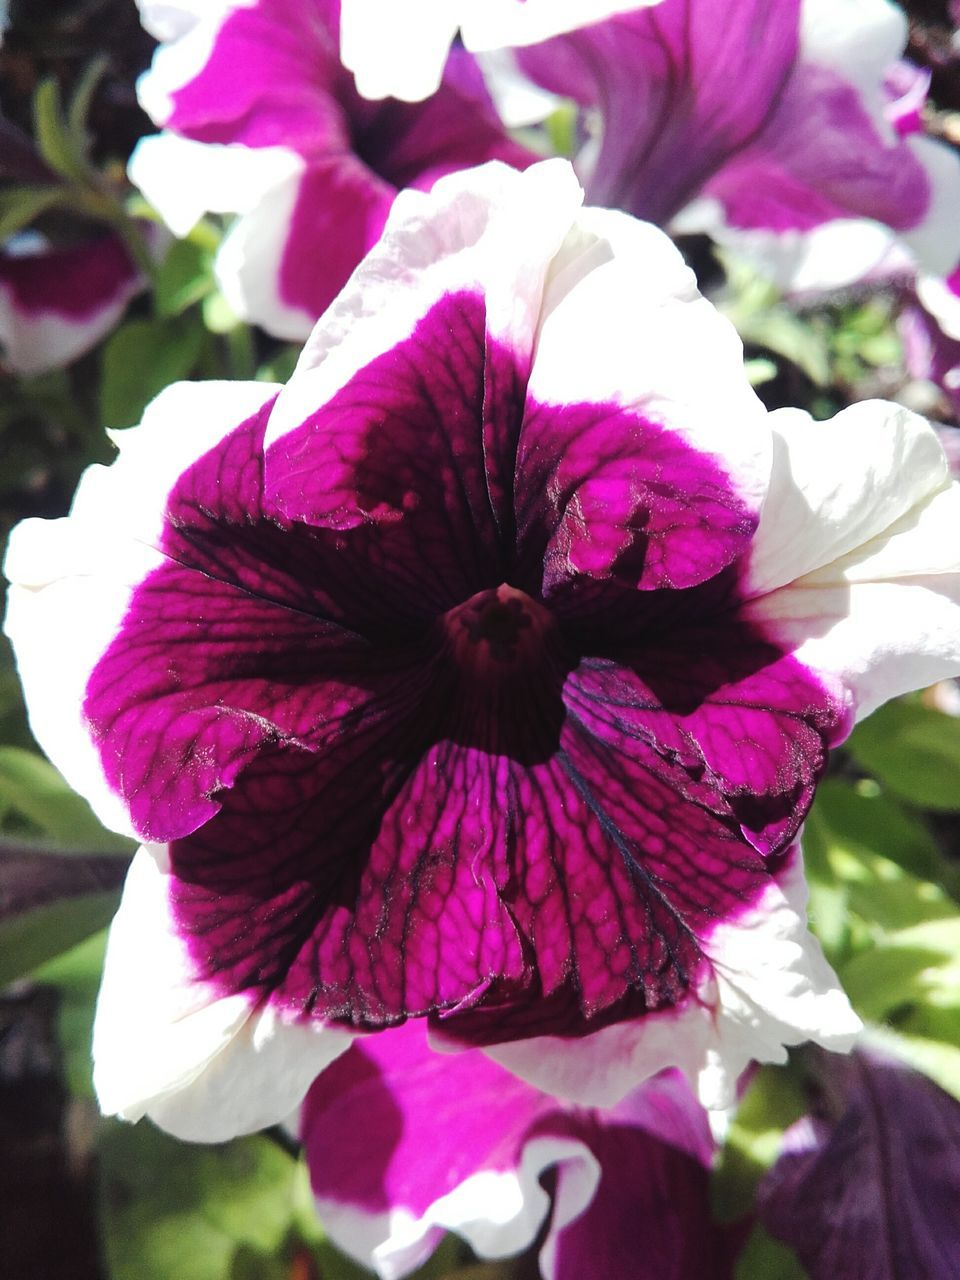 flower, petal, fragility, flower head, freshness, beauty in nature, nature, growth, petunia, outdoors, day, close-up, plant, springtime, no people, blooming